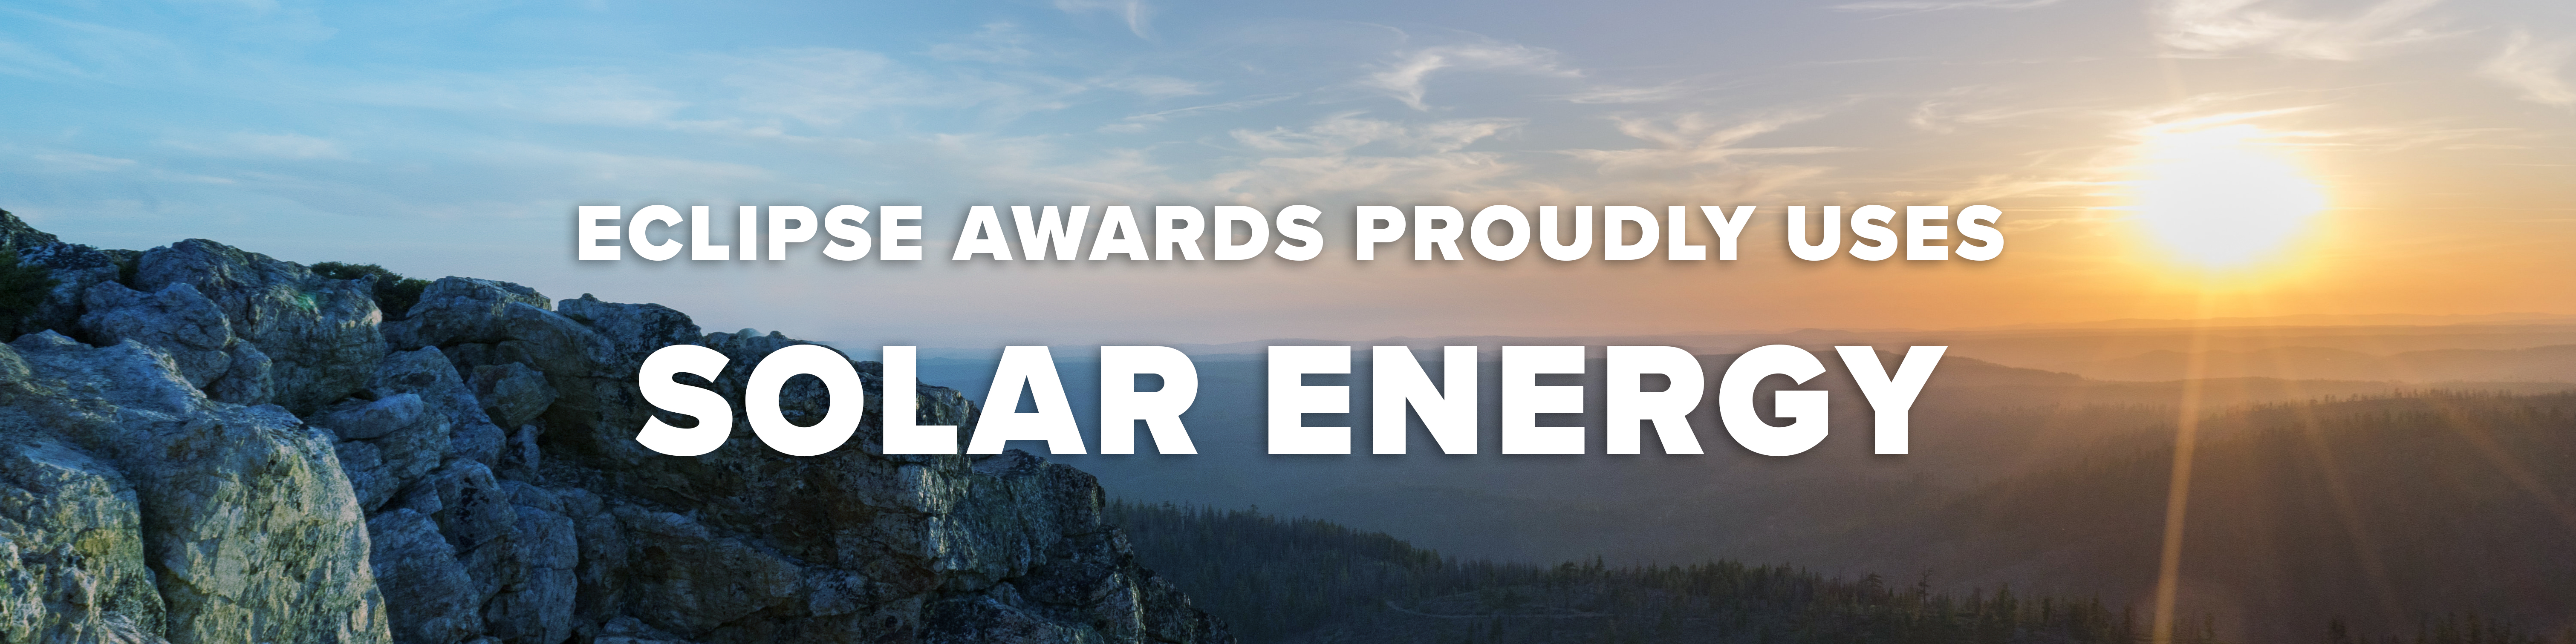 Eclipse Awards: Powered by Solar Energy